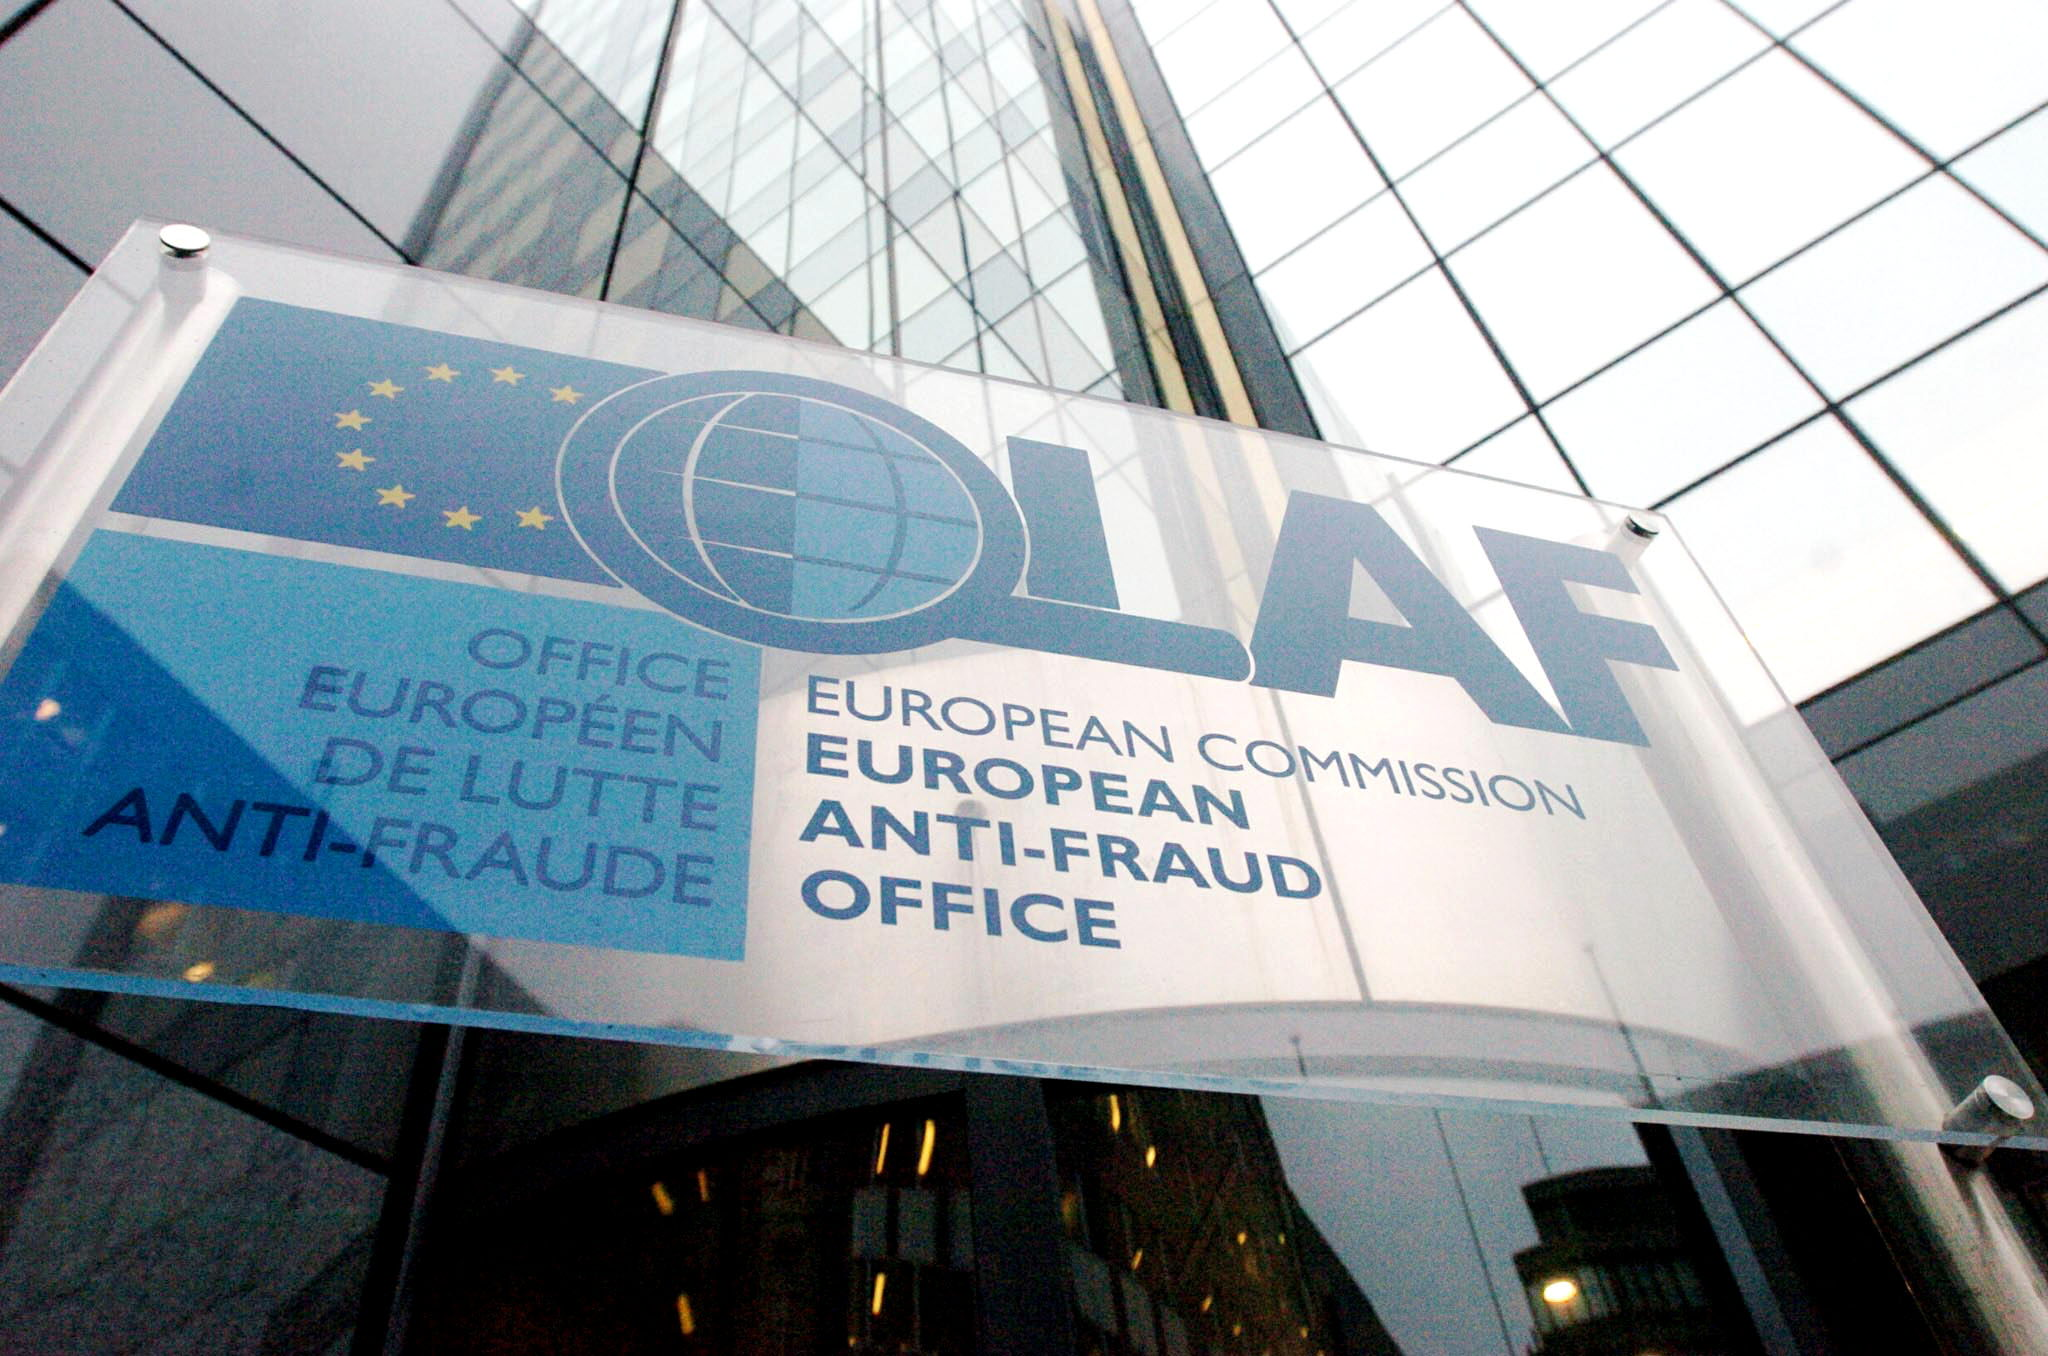 European Anti-Fraud Office